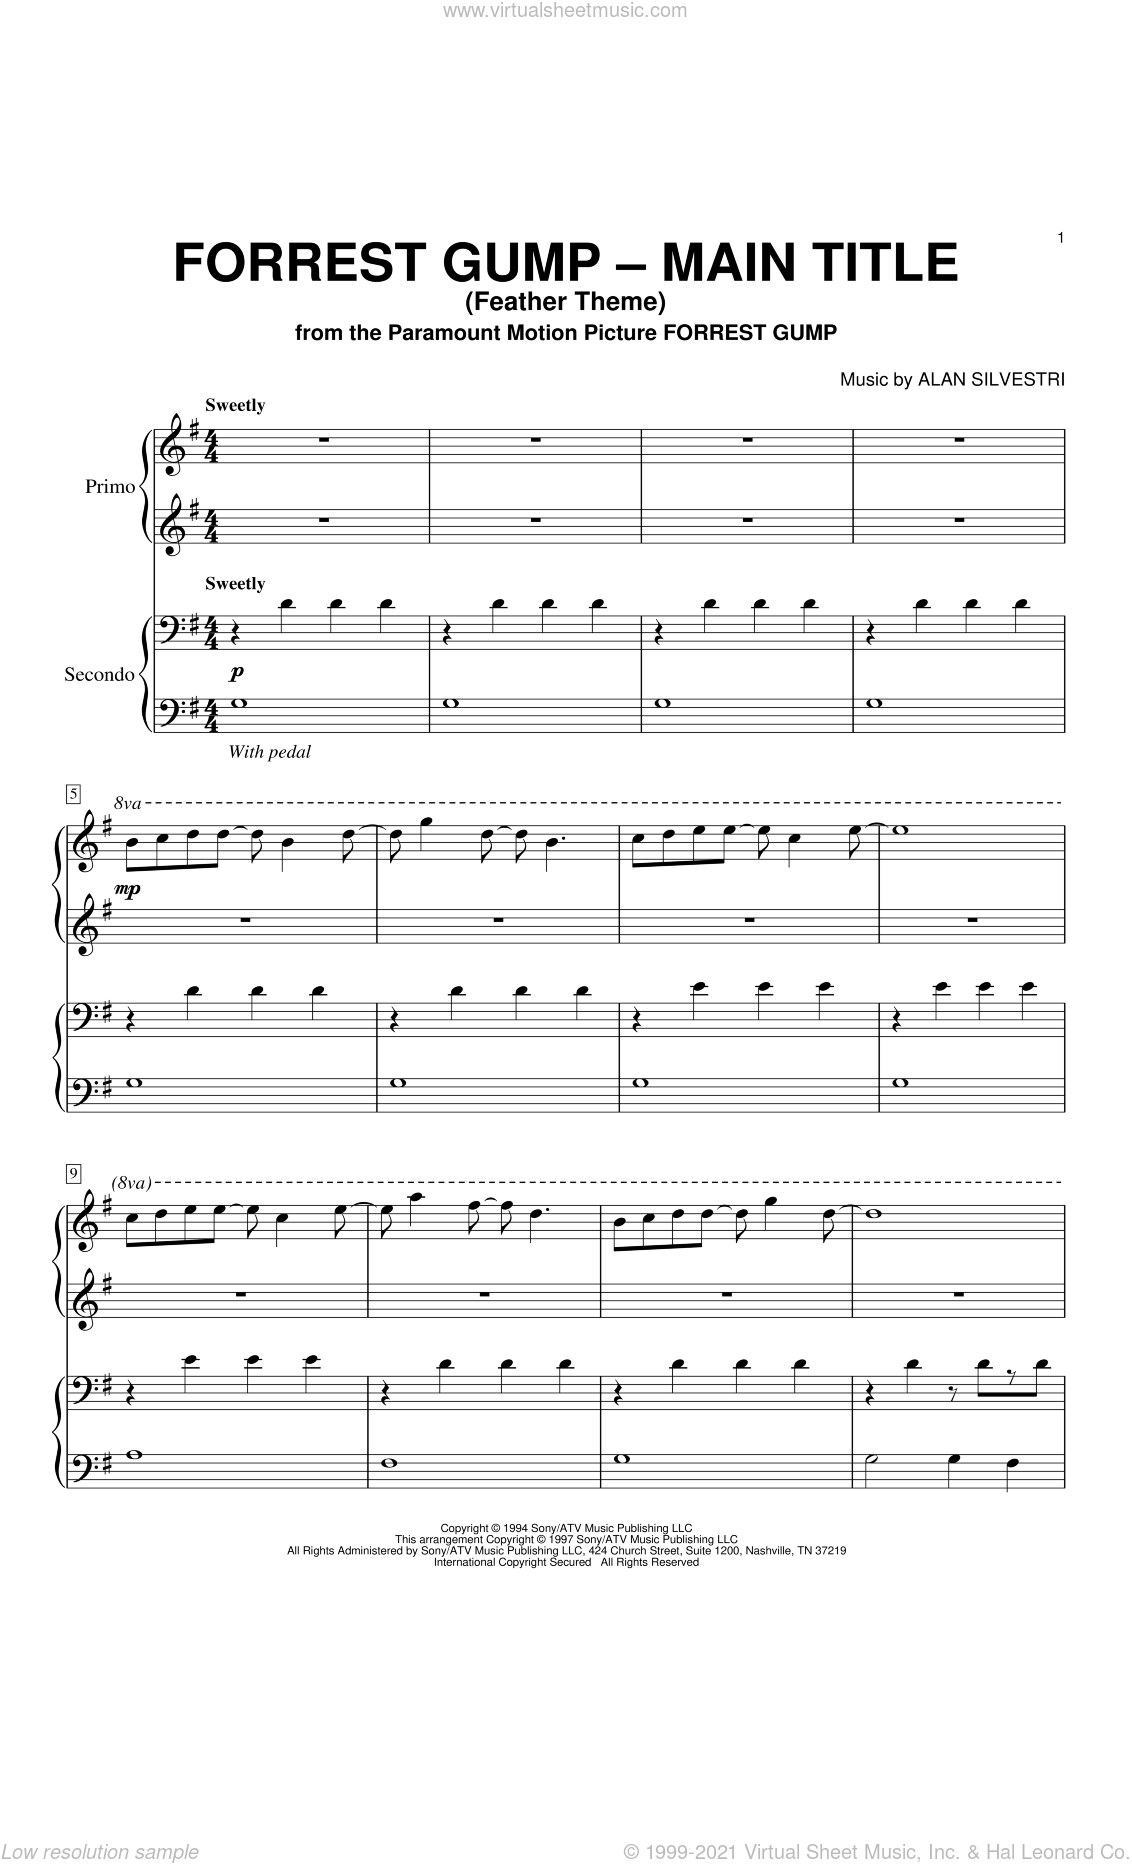 Forrest Gump - Main Title (Feather Theme) sheet music for piano four hands by Alan Silvestri, intermediate skill level